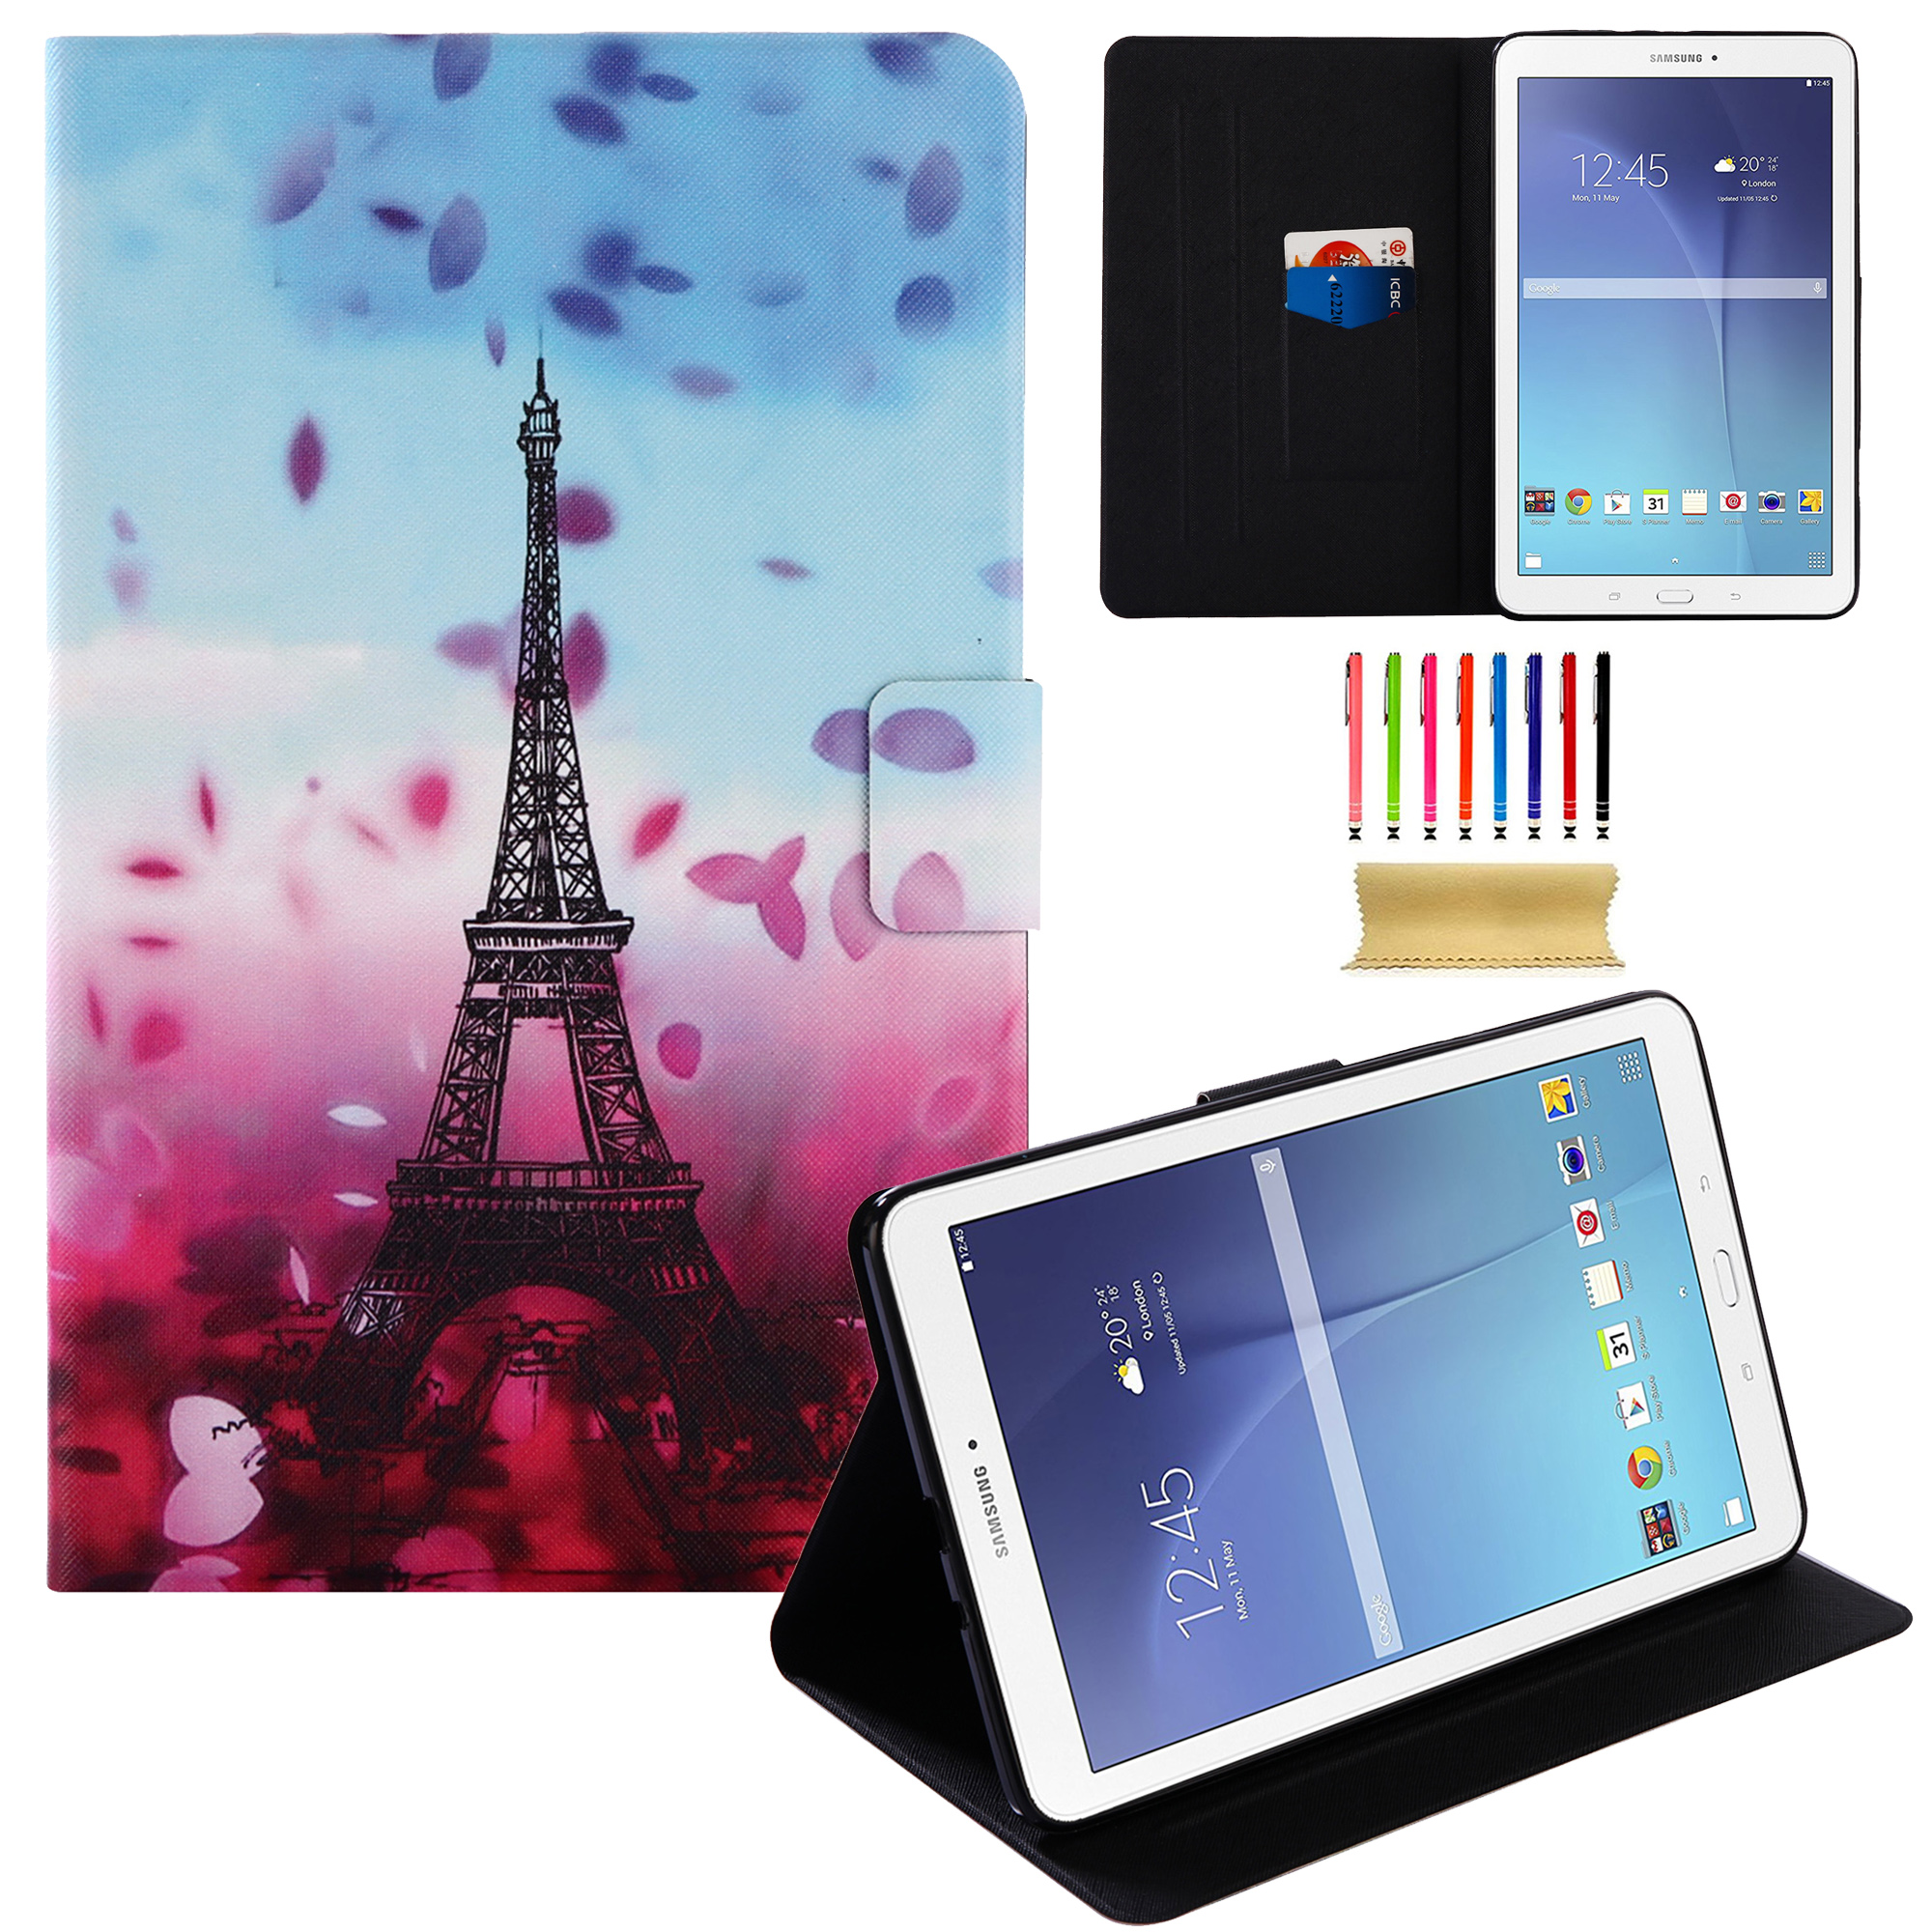 "Galaxy Tab E 9.6 Case, Allytech PU Leather Folio Stand Wallet Covers for Galaxy Tab E 9.6""/ Tab E Nook 9.6-Inch Tablet (SM-T560 / T561 / T565 and SM-T567V Verizon 4G LTE Version), Eiffel Tower"